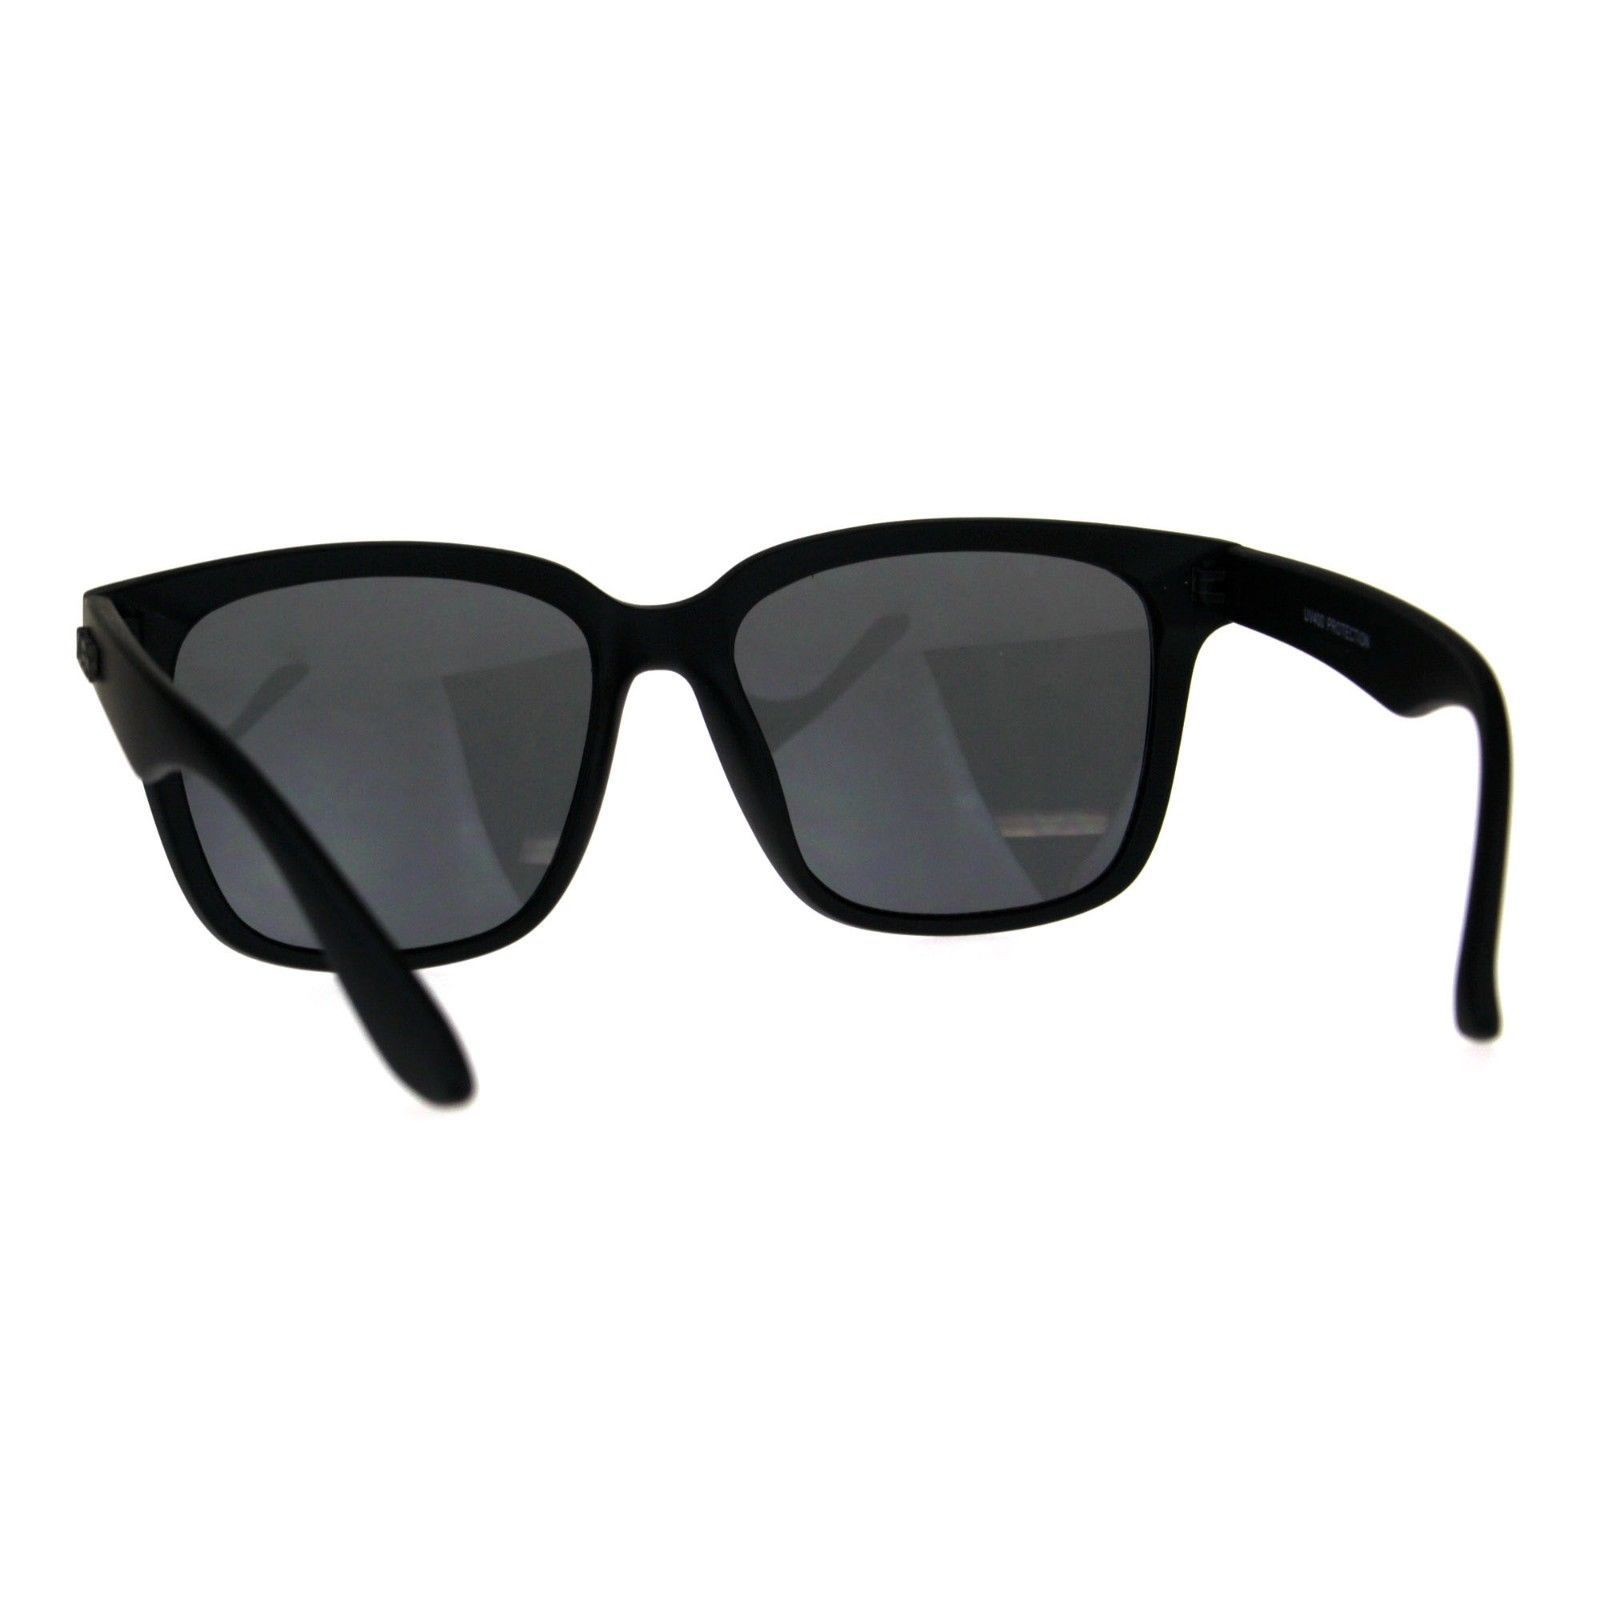 92dc0371e KUSH Sunglasses Unisex Black Square Frame Mirrored Lens UV 400